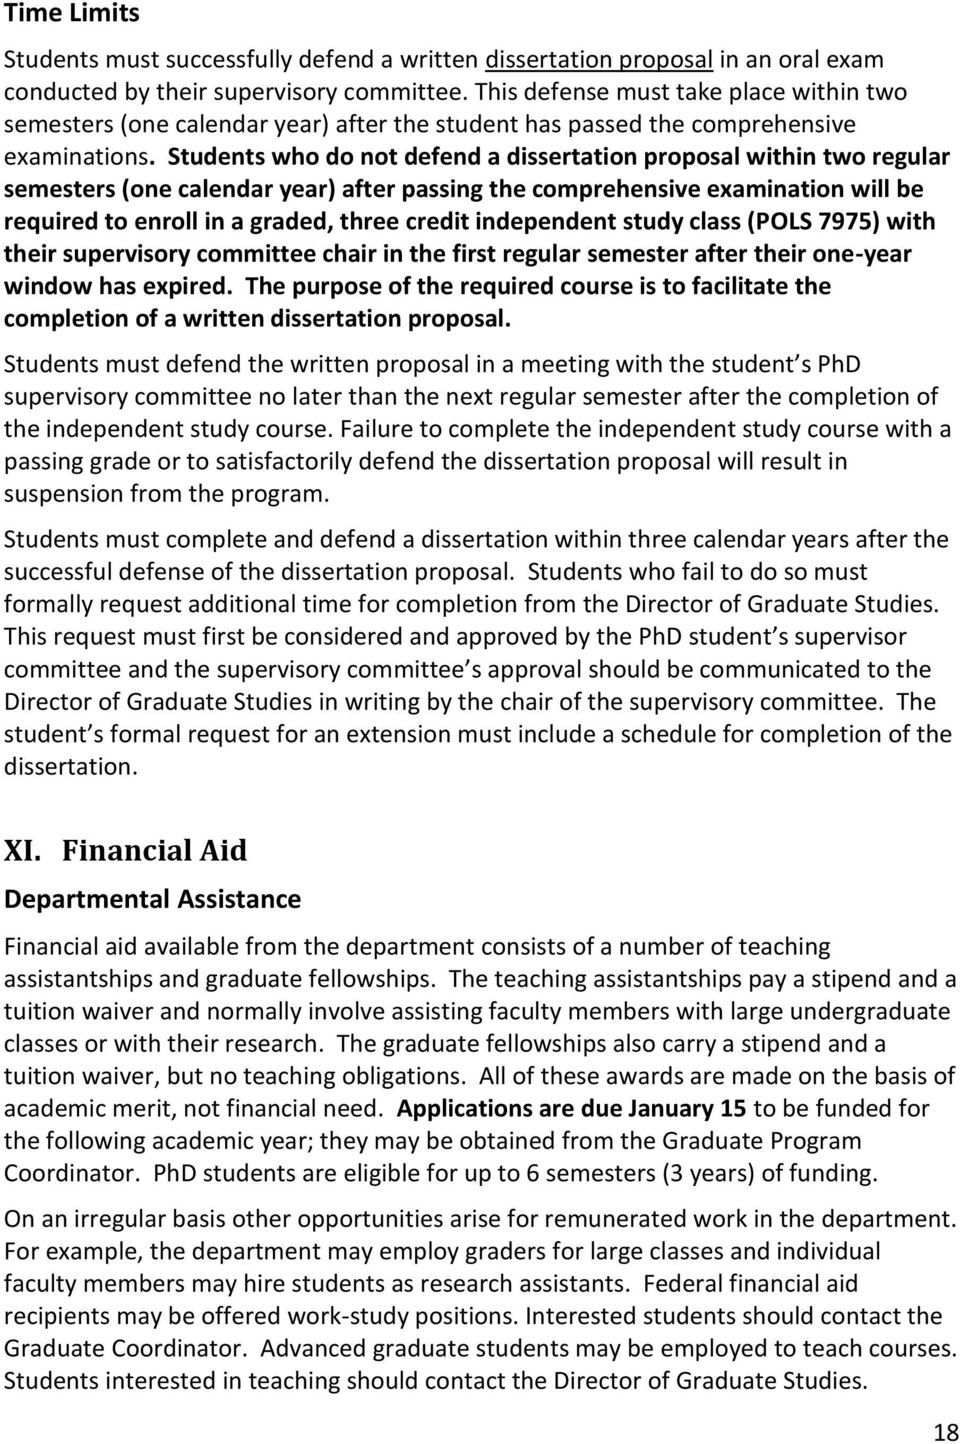 Students who do not defend a dissertation proposal within two regular semesters (one calendar year) after passing the comprehensive examination will be required to enroll in a graded, three credit